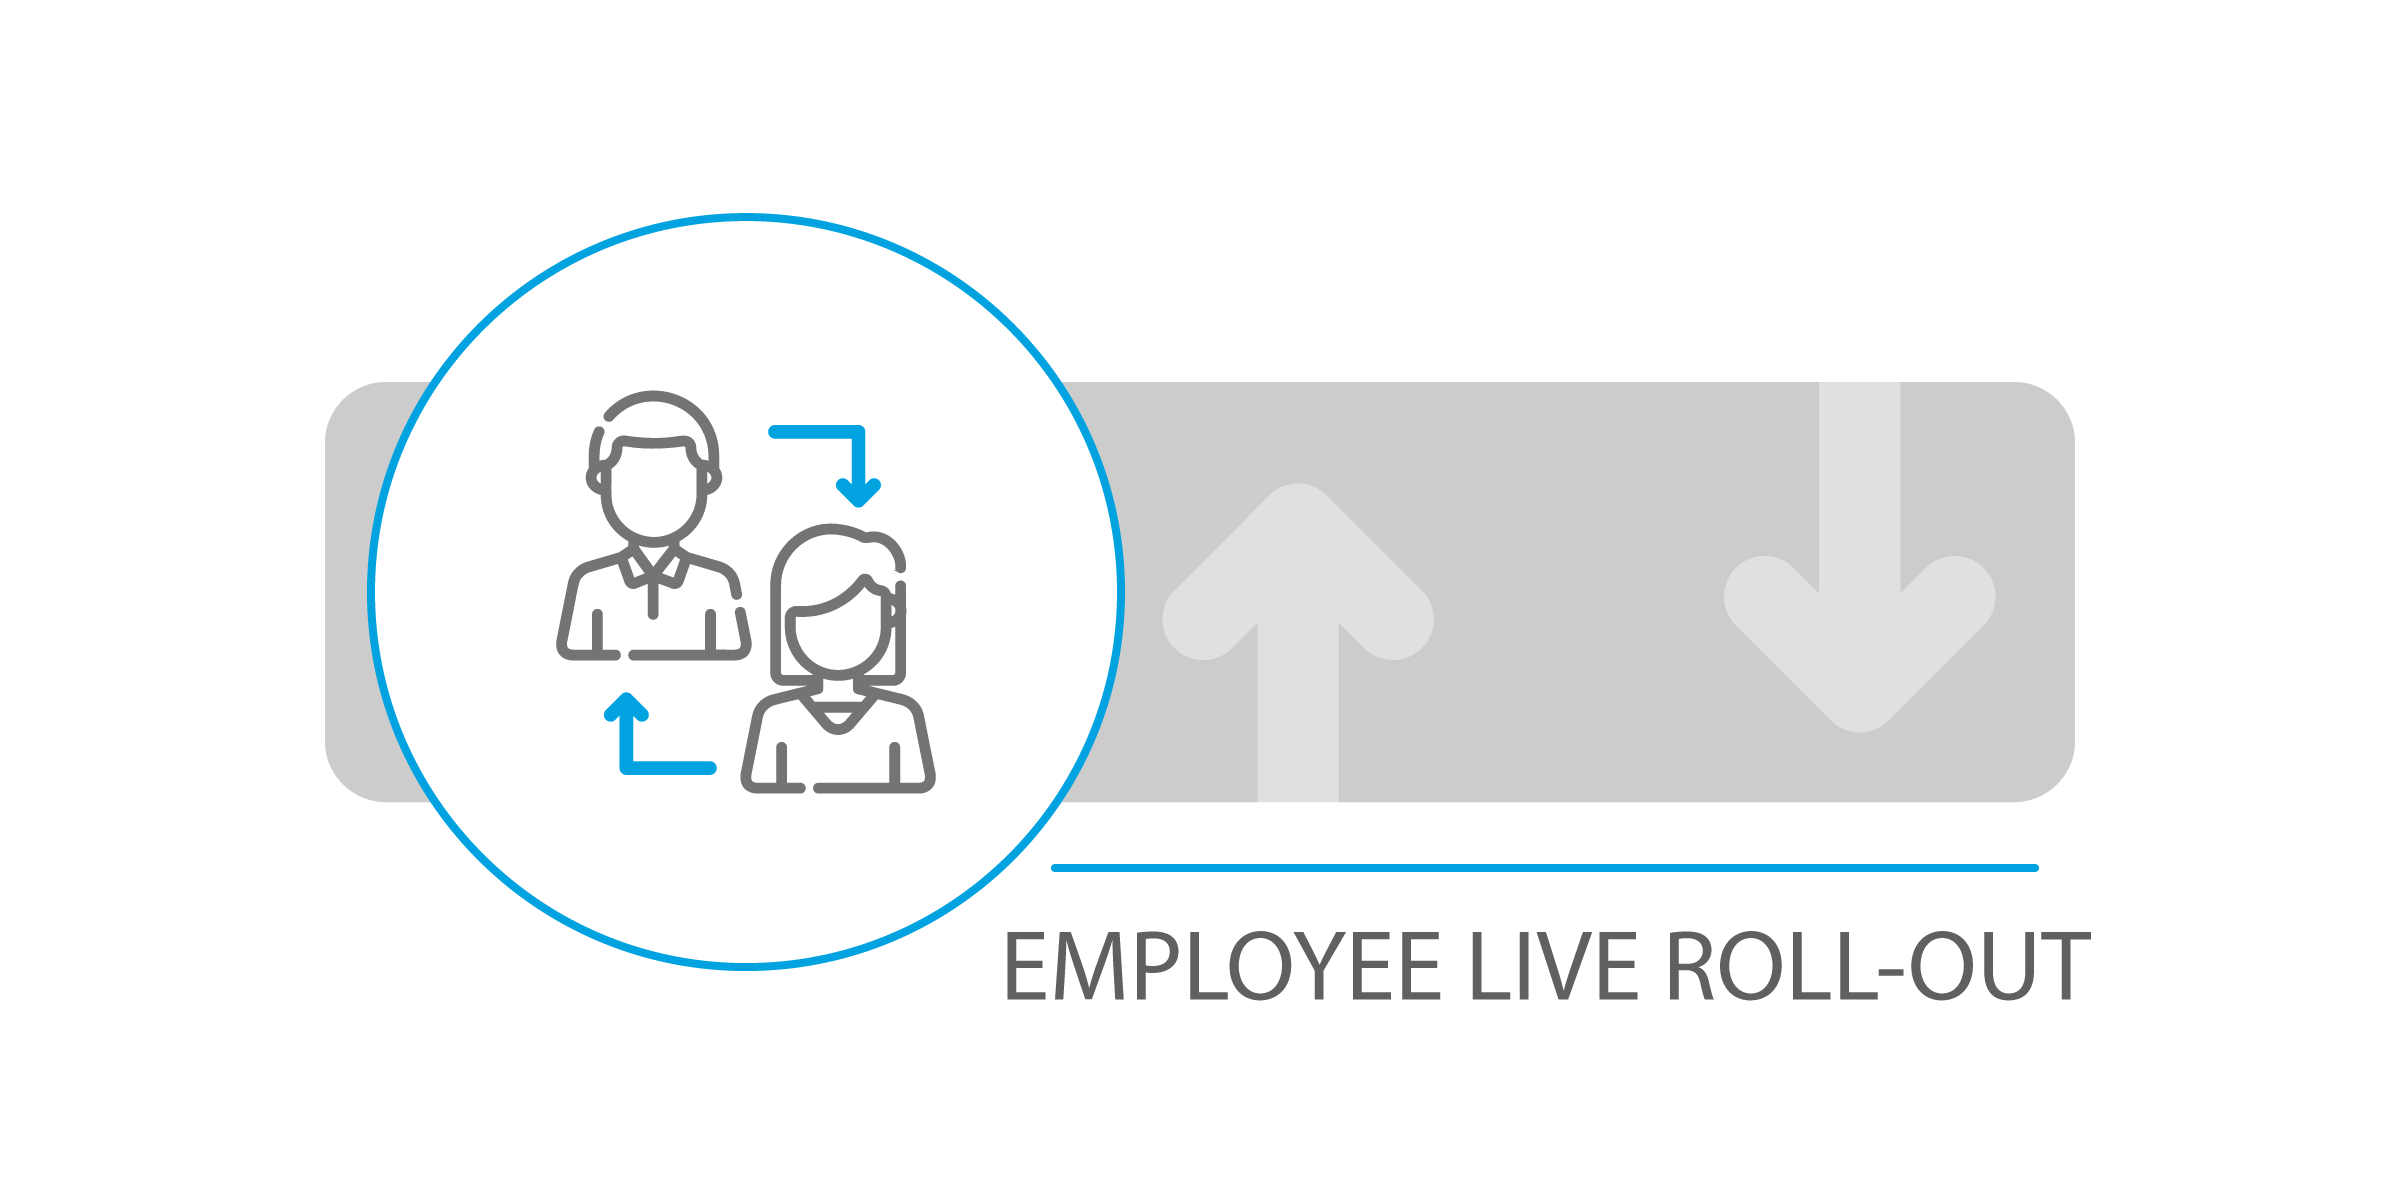 Employee Roll-Out Image